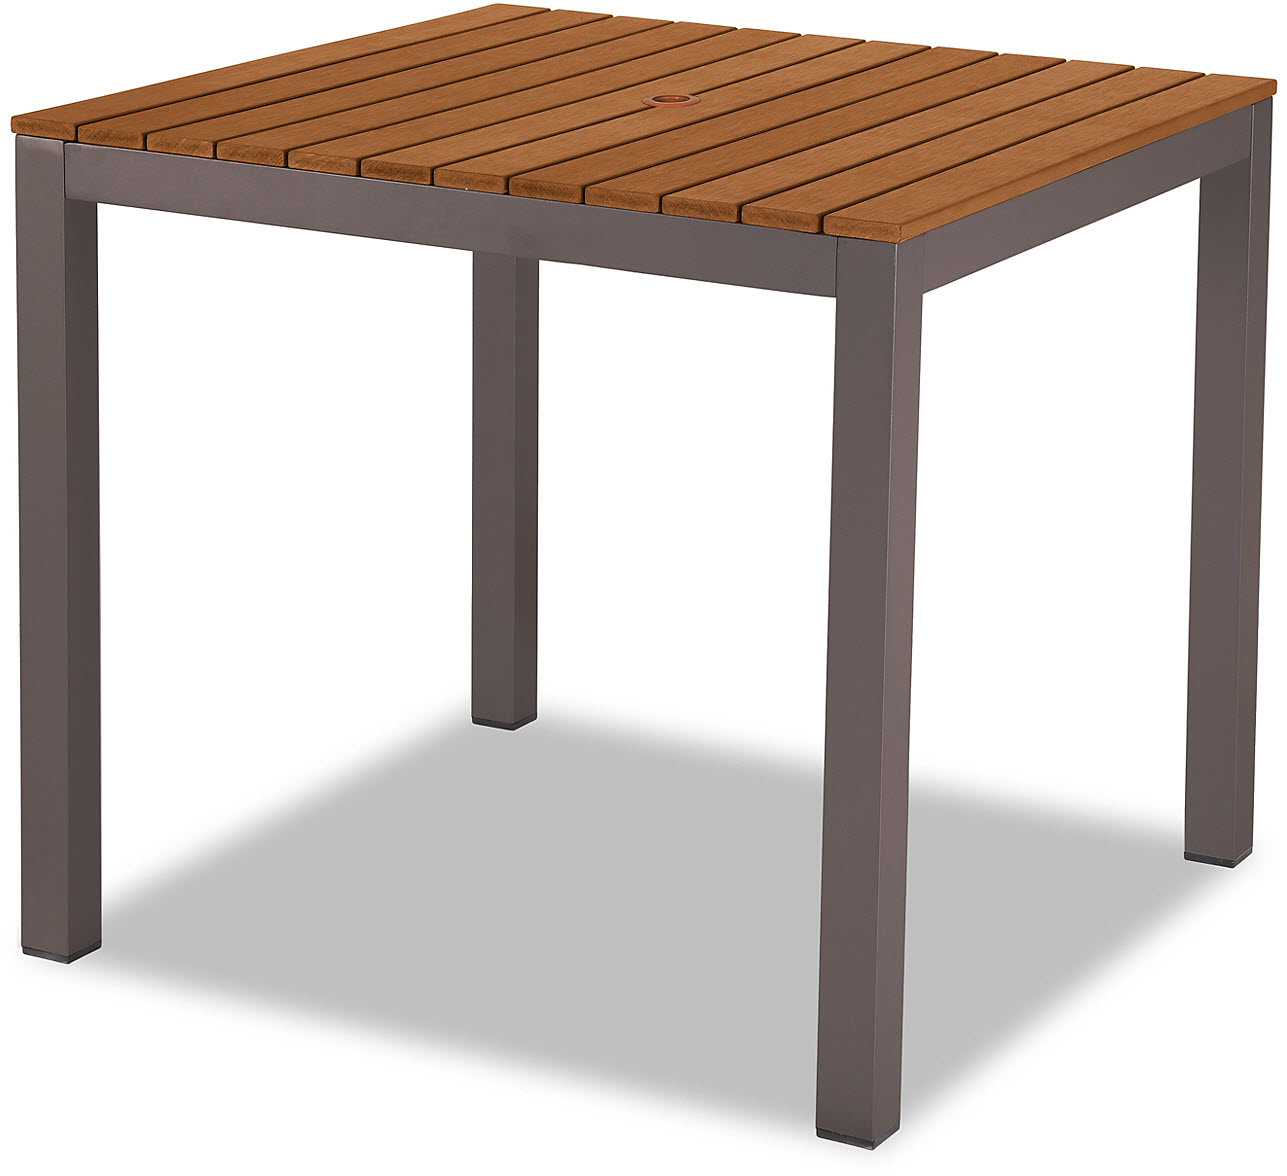 Aluminum Patio Table In Rust Color Finish With Plastic Teak Slats - Teak and aluminium outdoor table